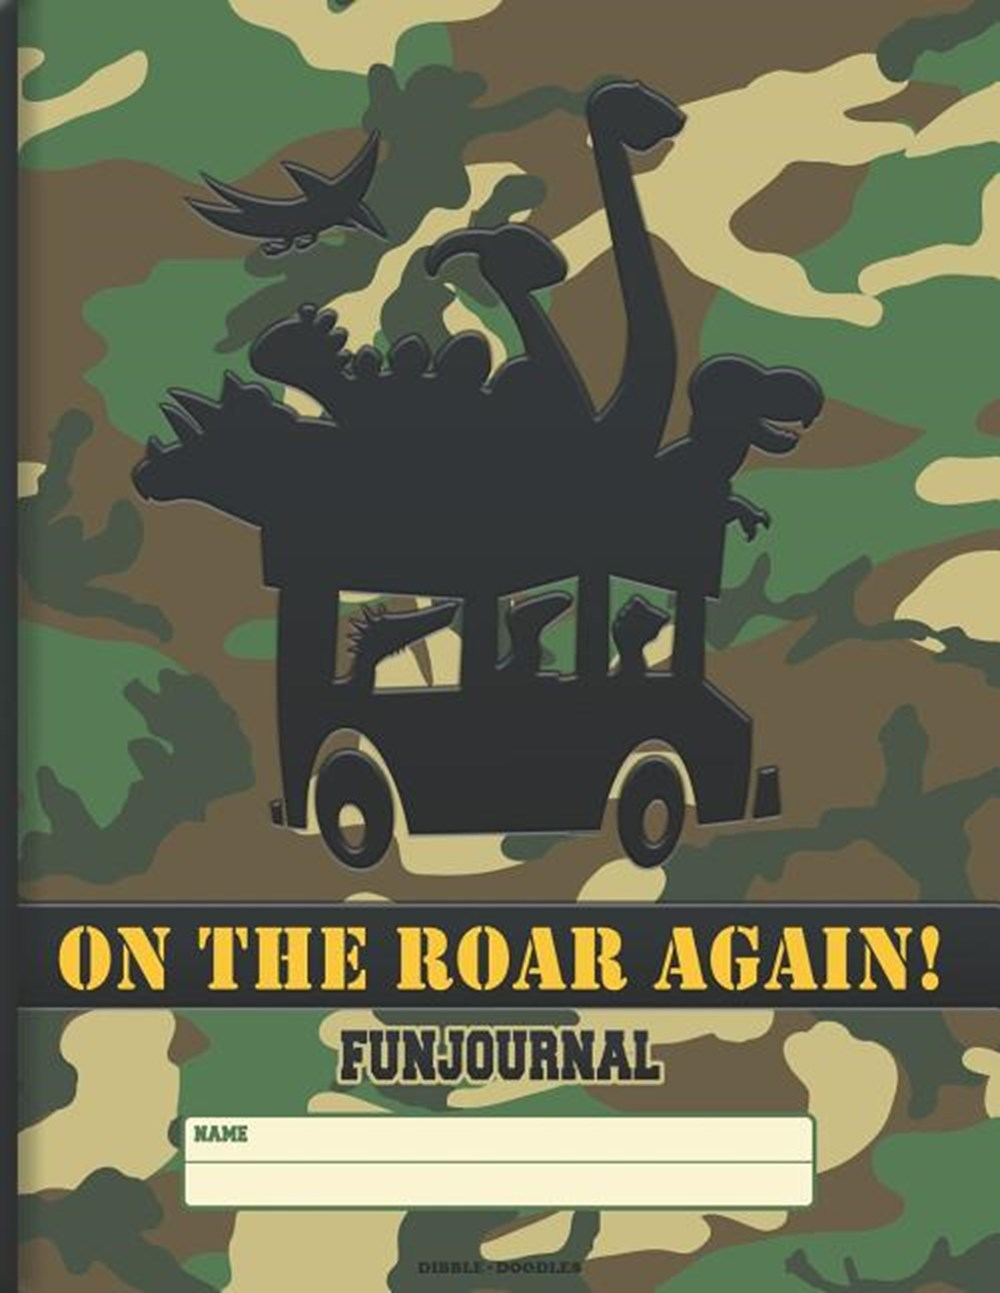 On the Roar Again! Fun - Journal to Draw, Sketch, and Write